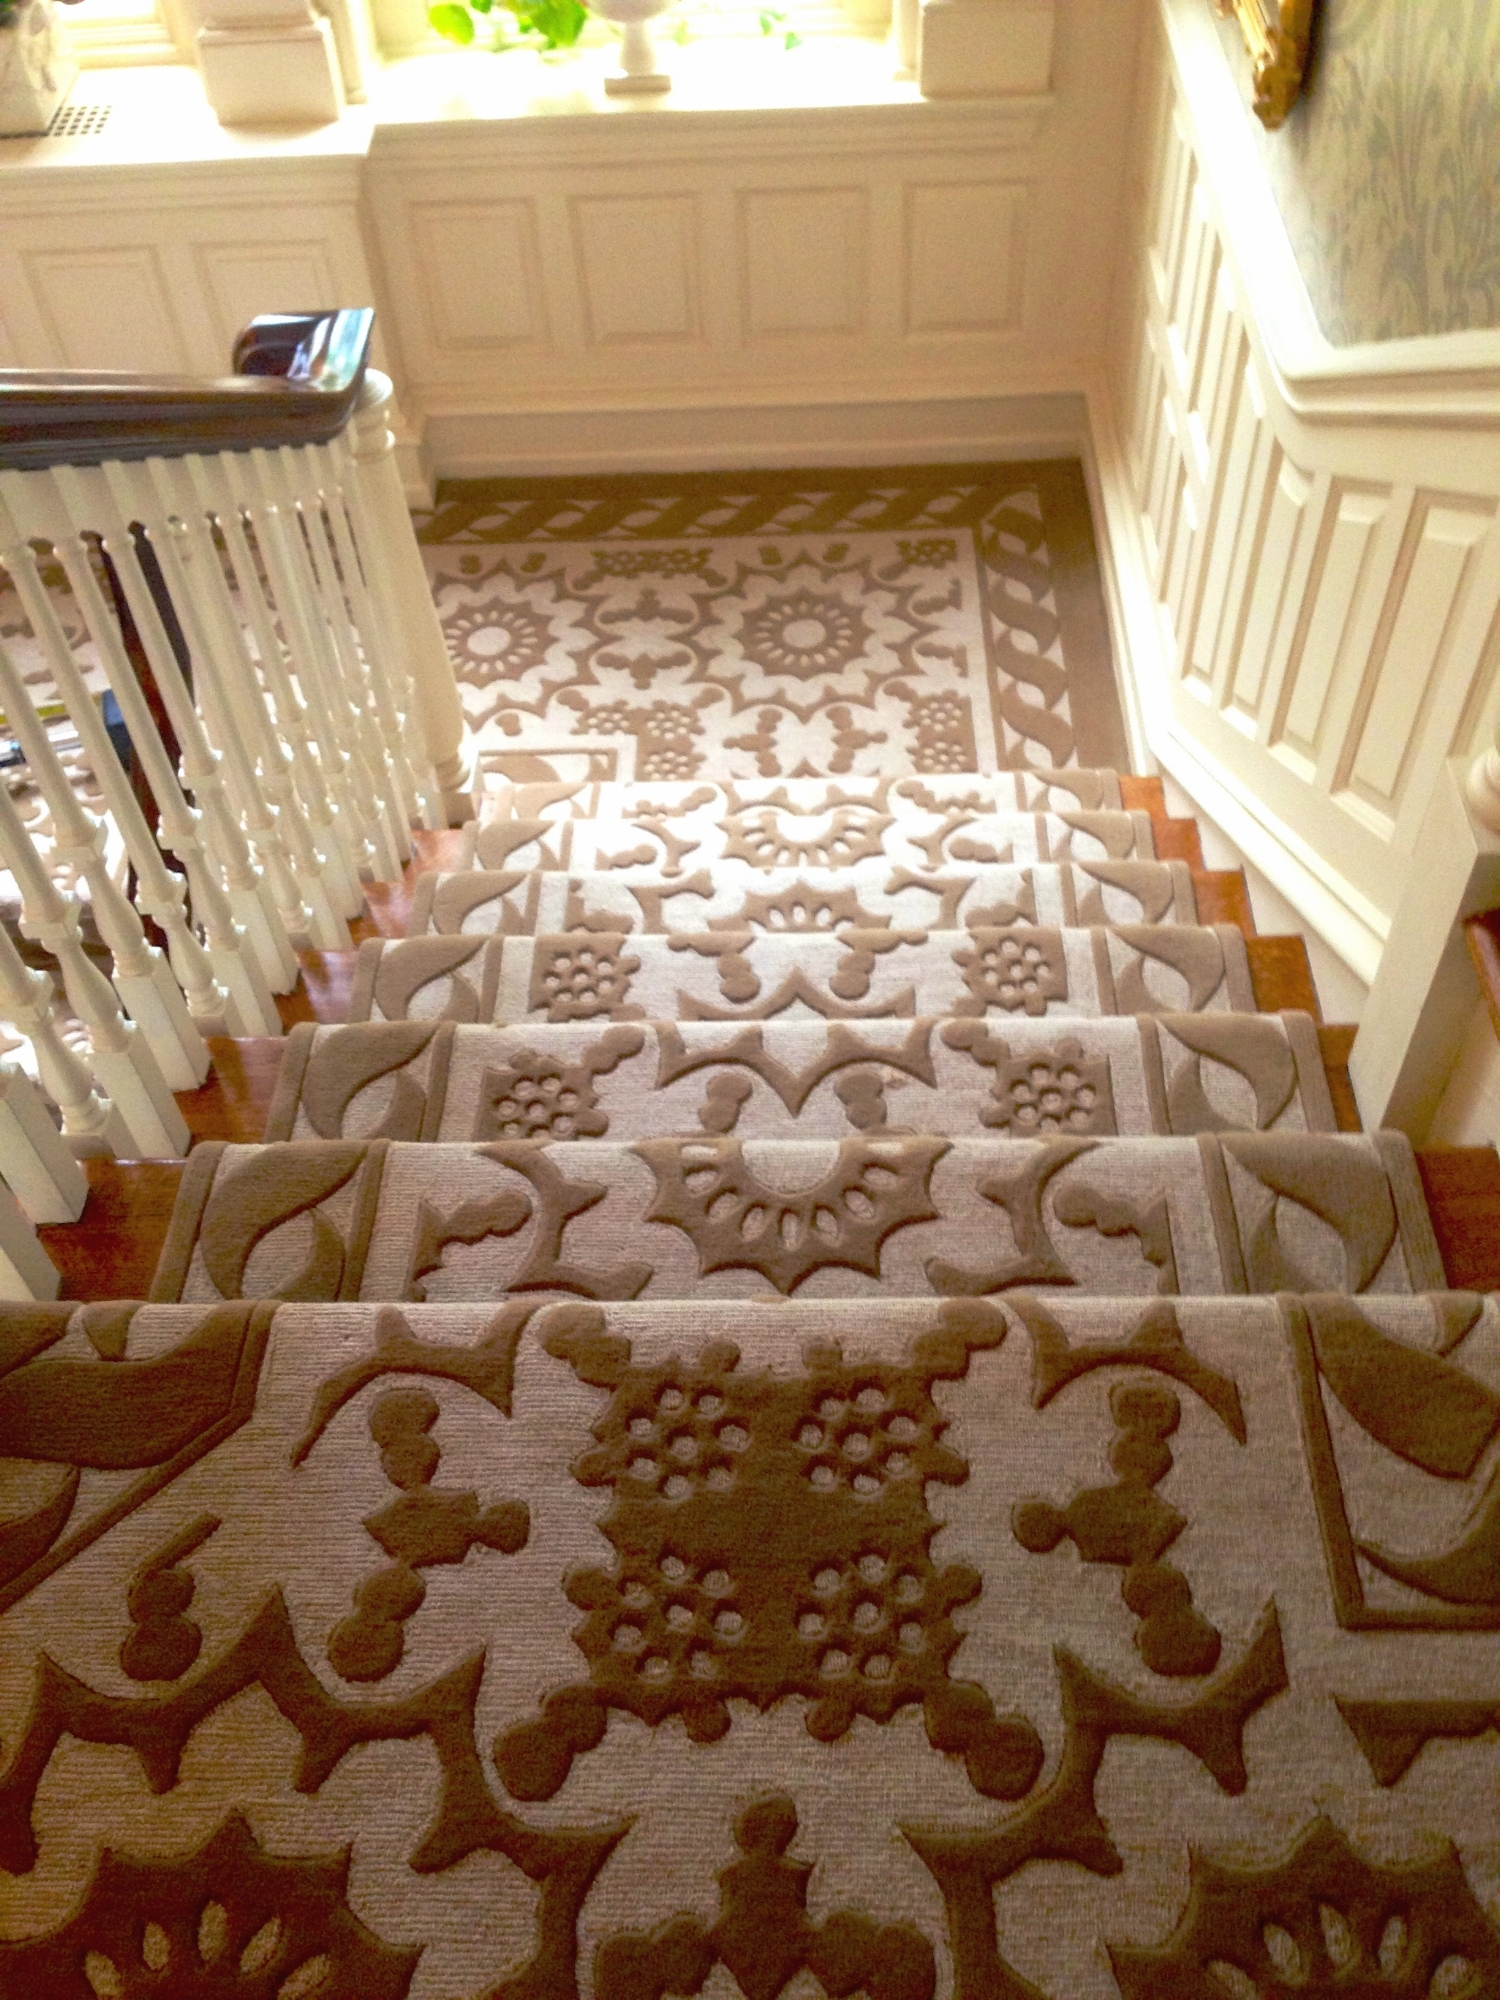 Lang Carpet Portfolio Of Our Work Gallery Page — Lang Carpet | Designer Carpet For Stairs | Stair Railing | Victorian | Flower Design | Treads | American Style